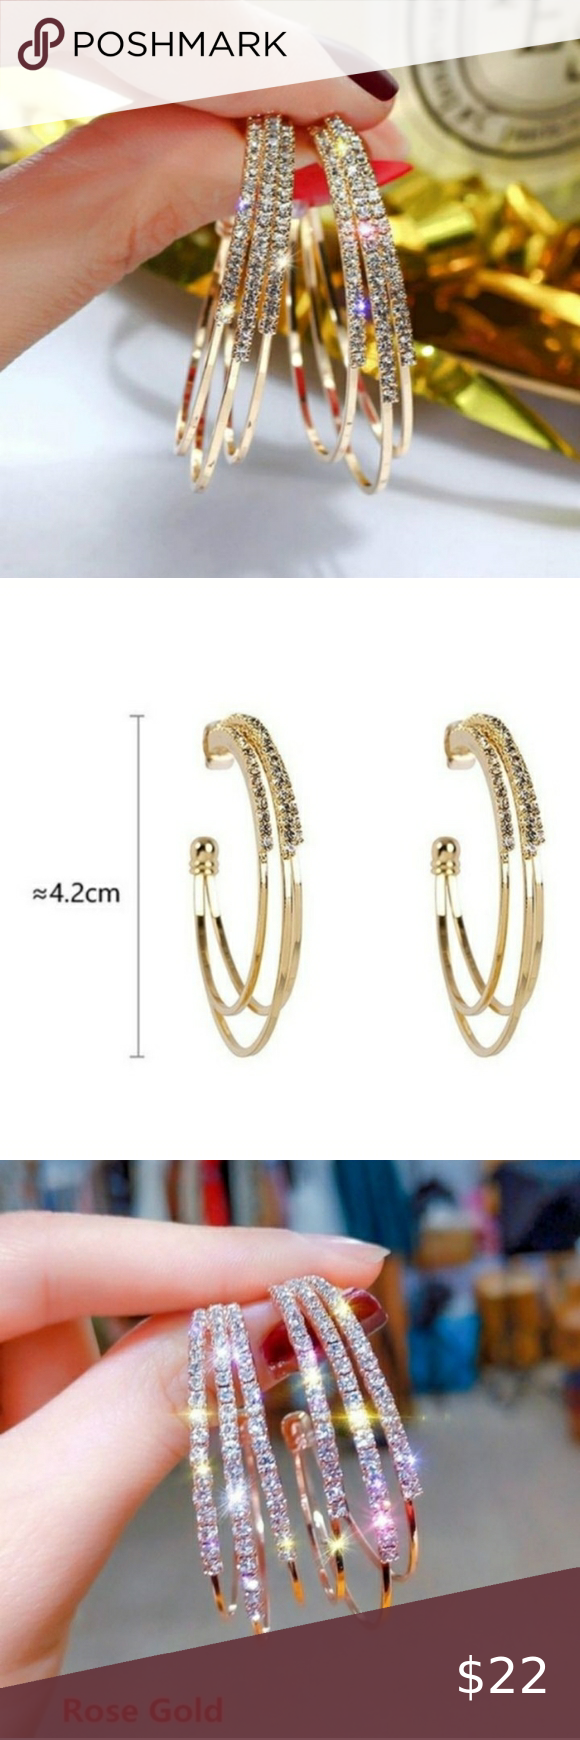 Sparkly Multilayer Hoop Earrings Multilayer Round Hoop CZ Earrings Shiny  Spa Sparkly Multilayer Hoop Earrings Multilayer Round Hoop CZ Earrings Shiny  Sparkly Choice of...